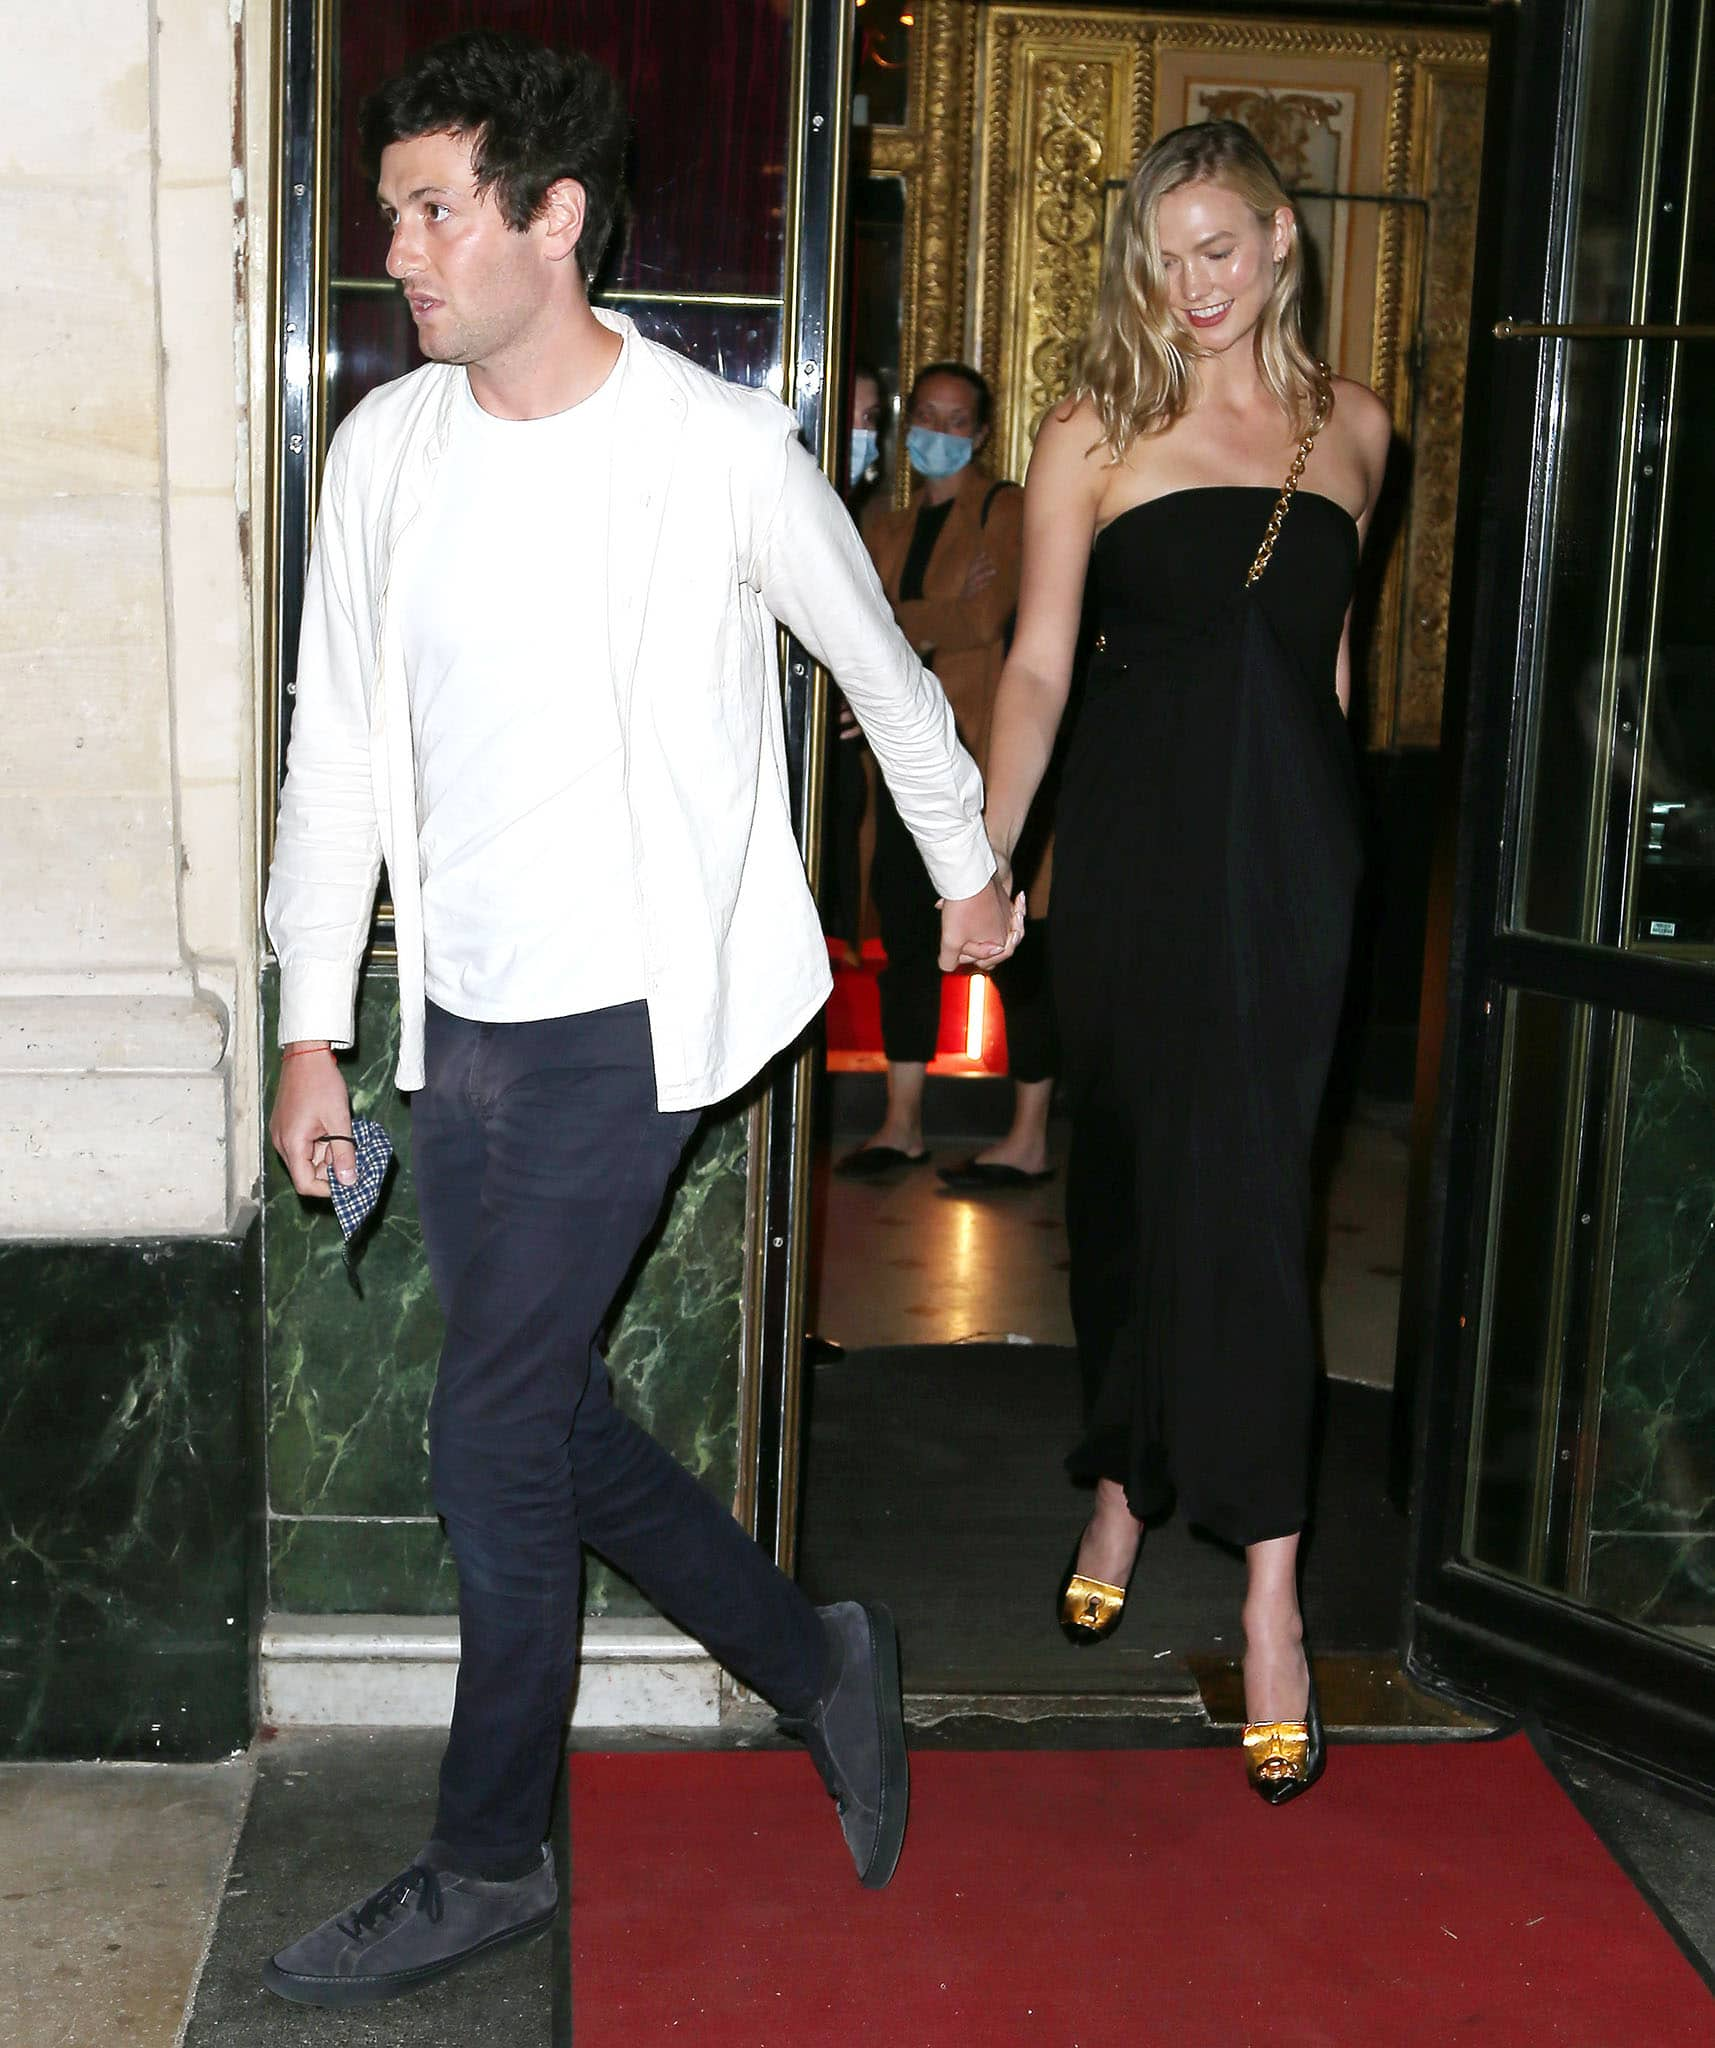 Joshua Kushner and Karlie Kloss step out for a dinner date at Le Grand Vefour restaurant during Paris Fashion Week on July 7, 2021